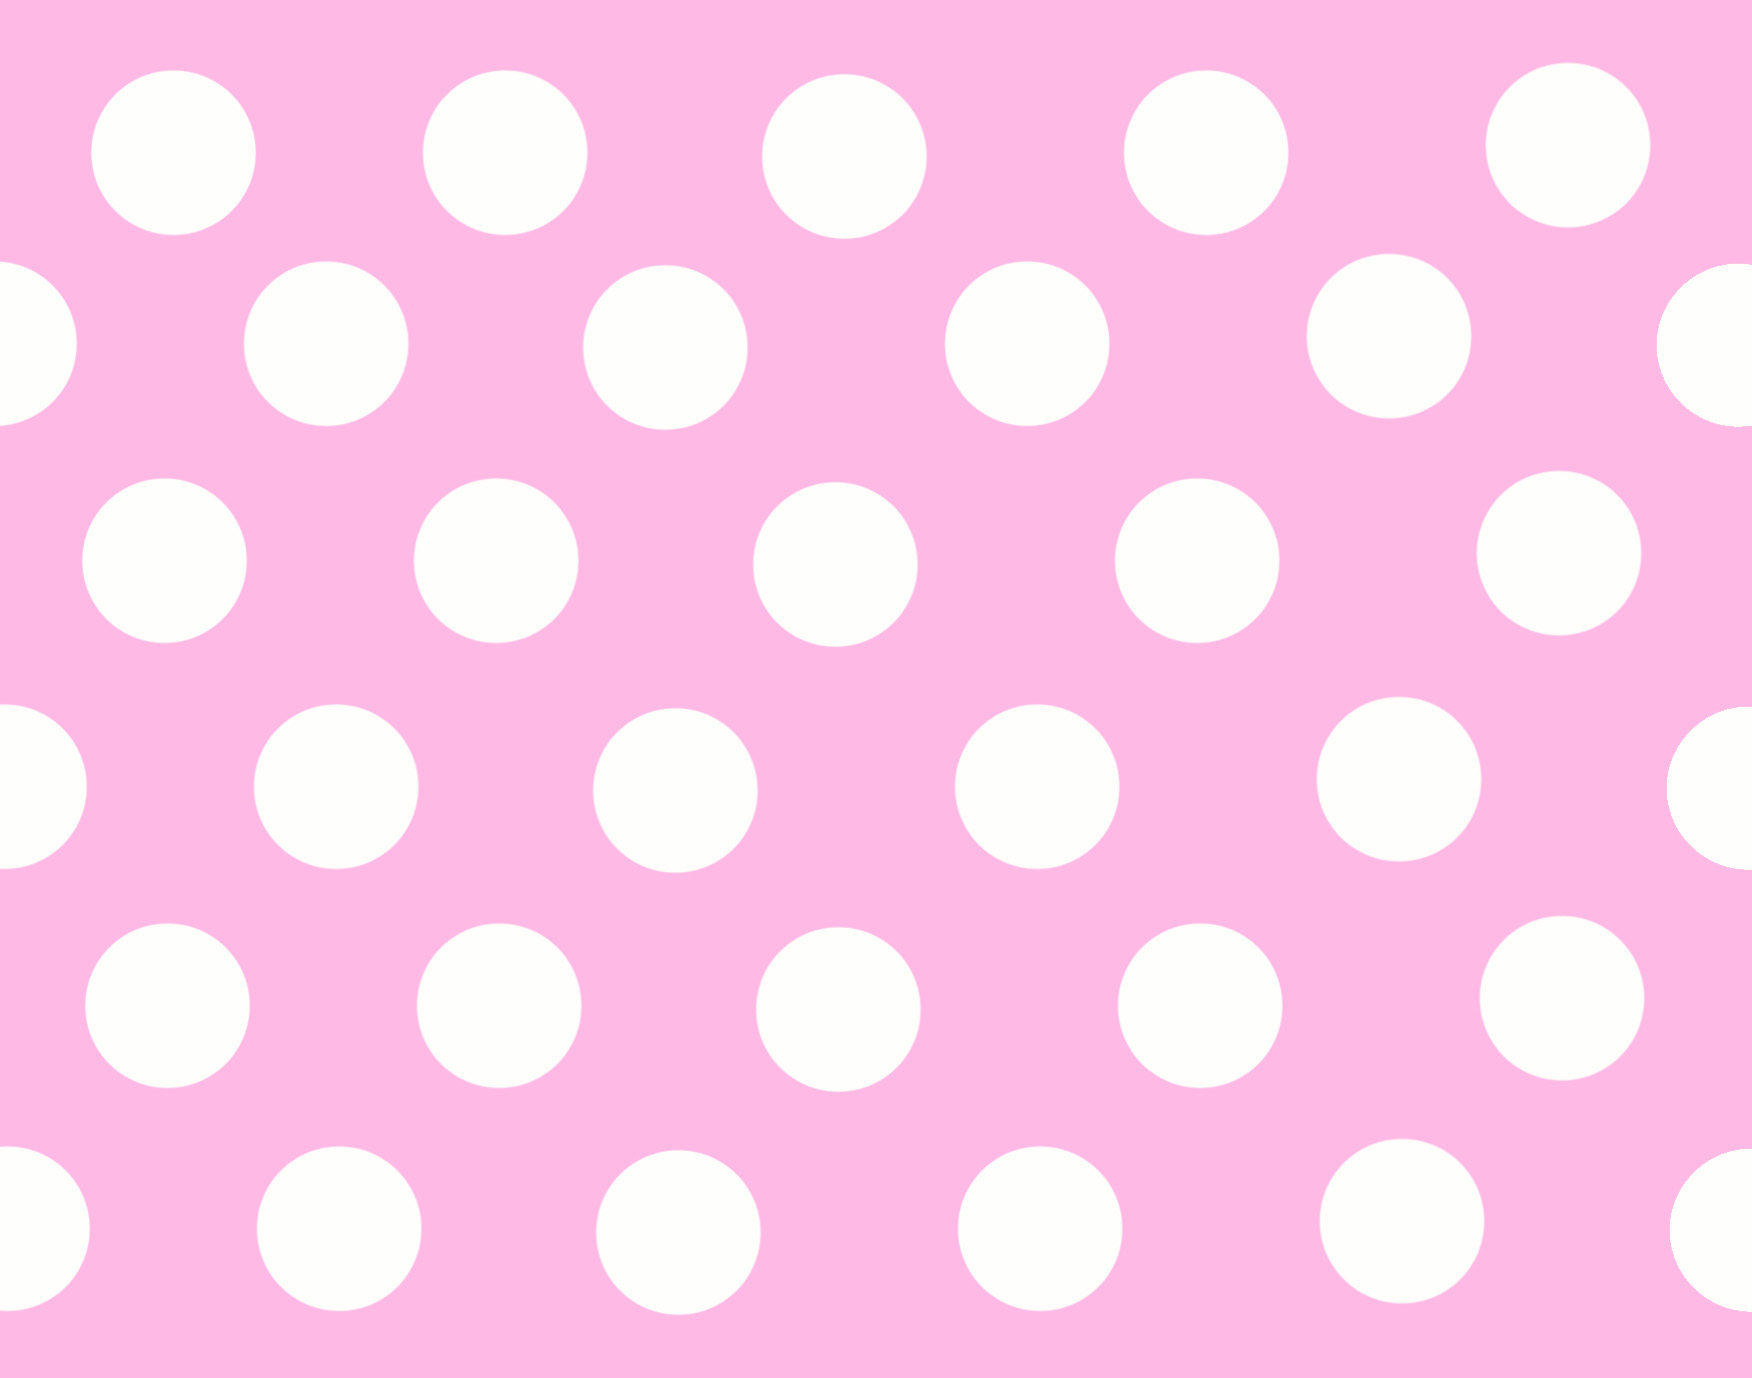 Cute polka dot wallpapers 13 wallpapers adorable wallpapers cute polka dot wallpapers 13 wallpapers voltagebd Image collections